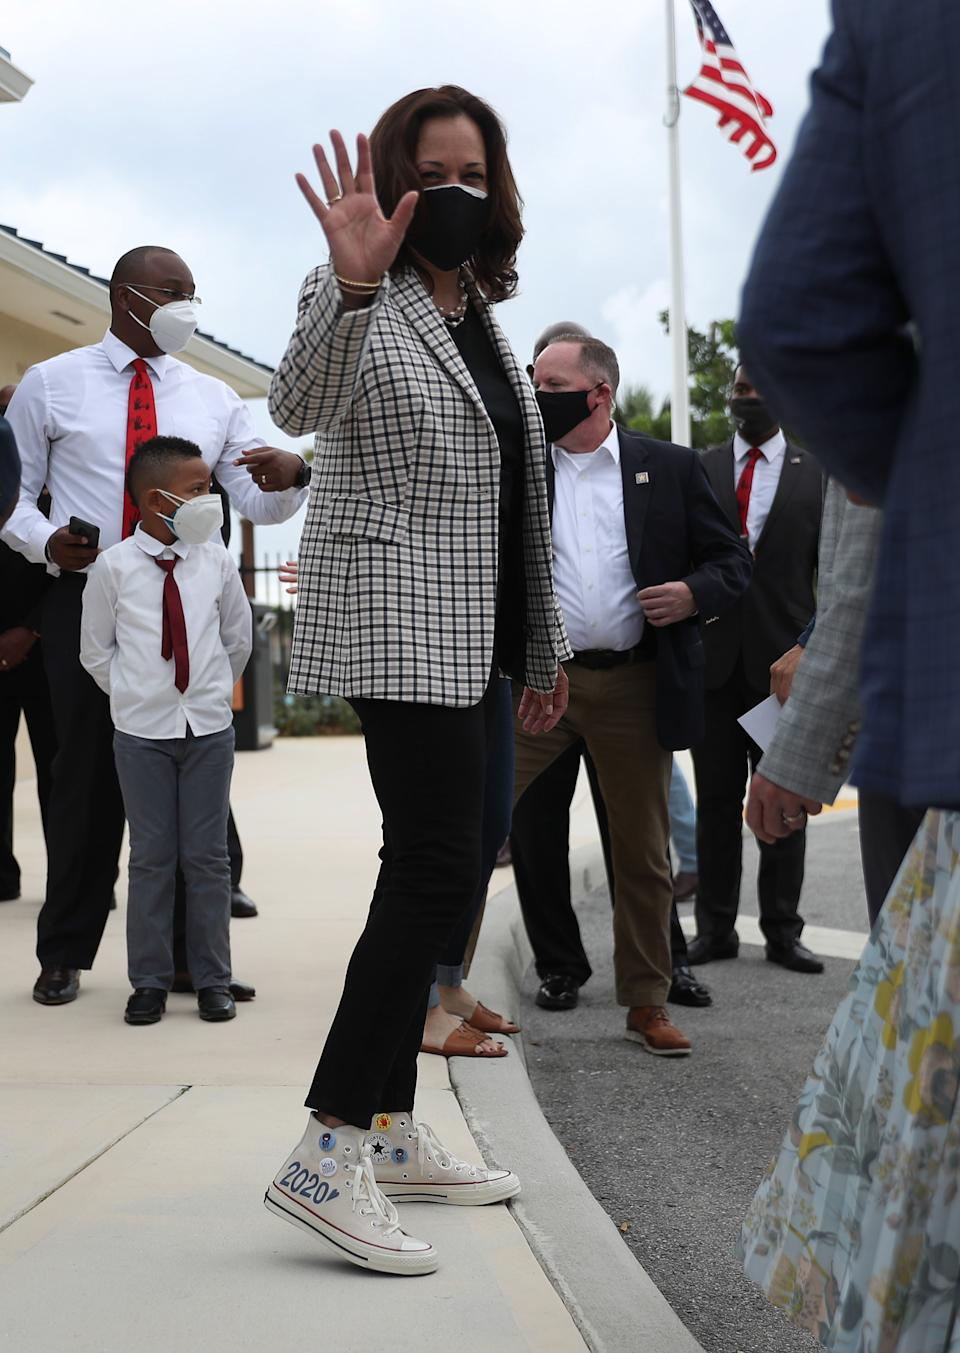 MIAMI GARDENS, FLORIDA - OCTOBER 31: Democratic Vice Presidential Nominee Sen. Kamala Harris (D-CA) waves after speaking to the media during a stop at Buccaneer Park on October 31, 2020 in Miami Gardens, Florida. Harris continues to campaign before the November 3rd election day. (Photo by Joe Raedle/Getty Images)